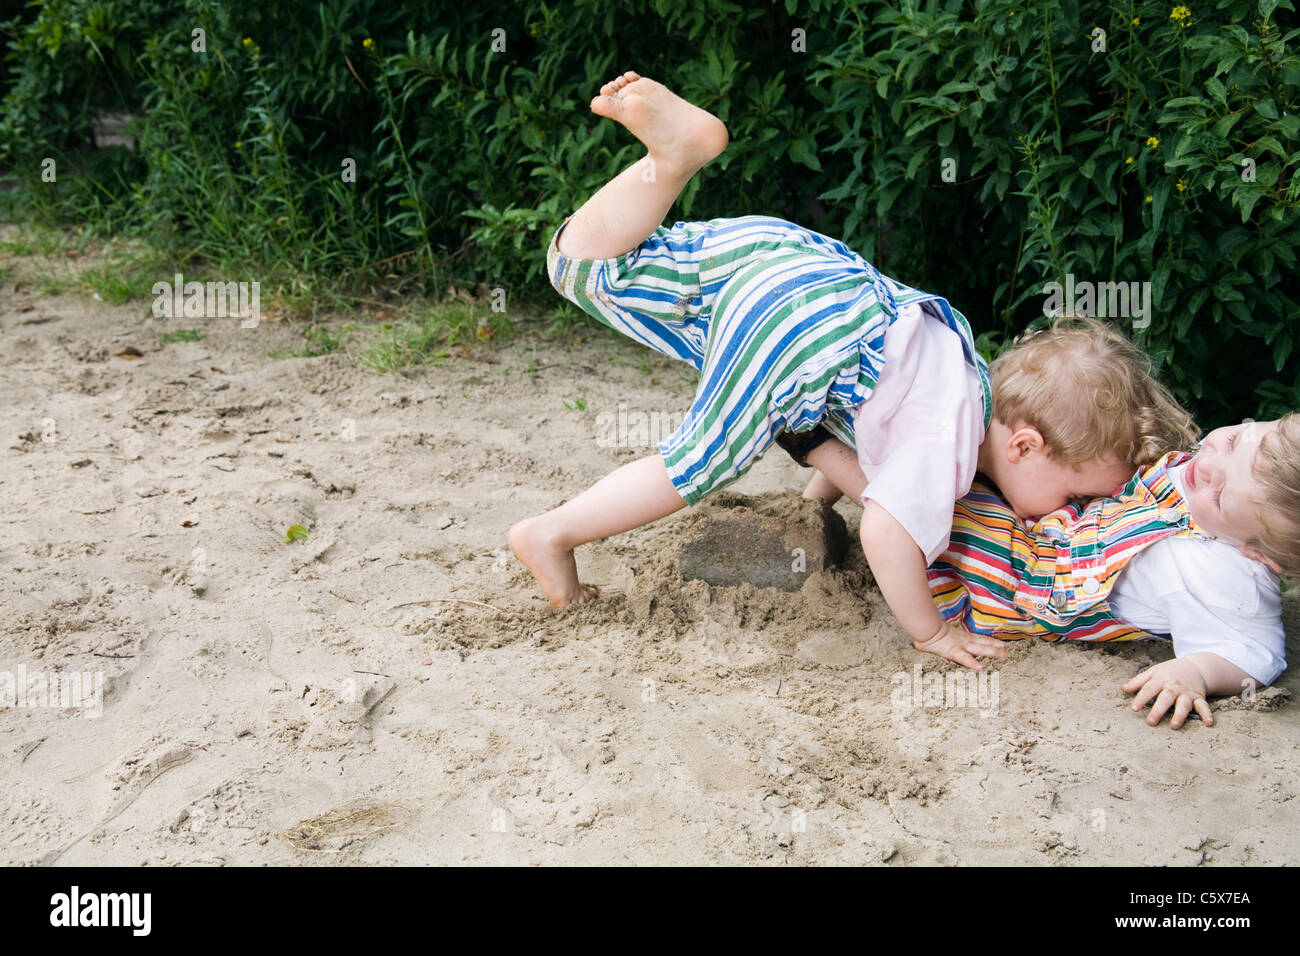 Germany, Berlin, Two boys (2-3) (3-4) playing together in sandbox - Stock Image